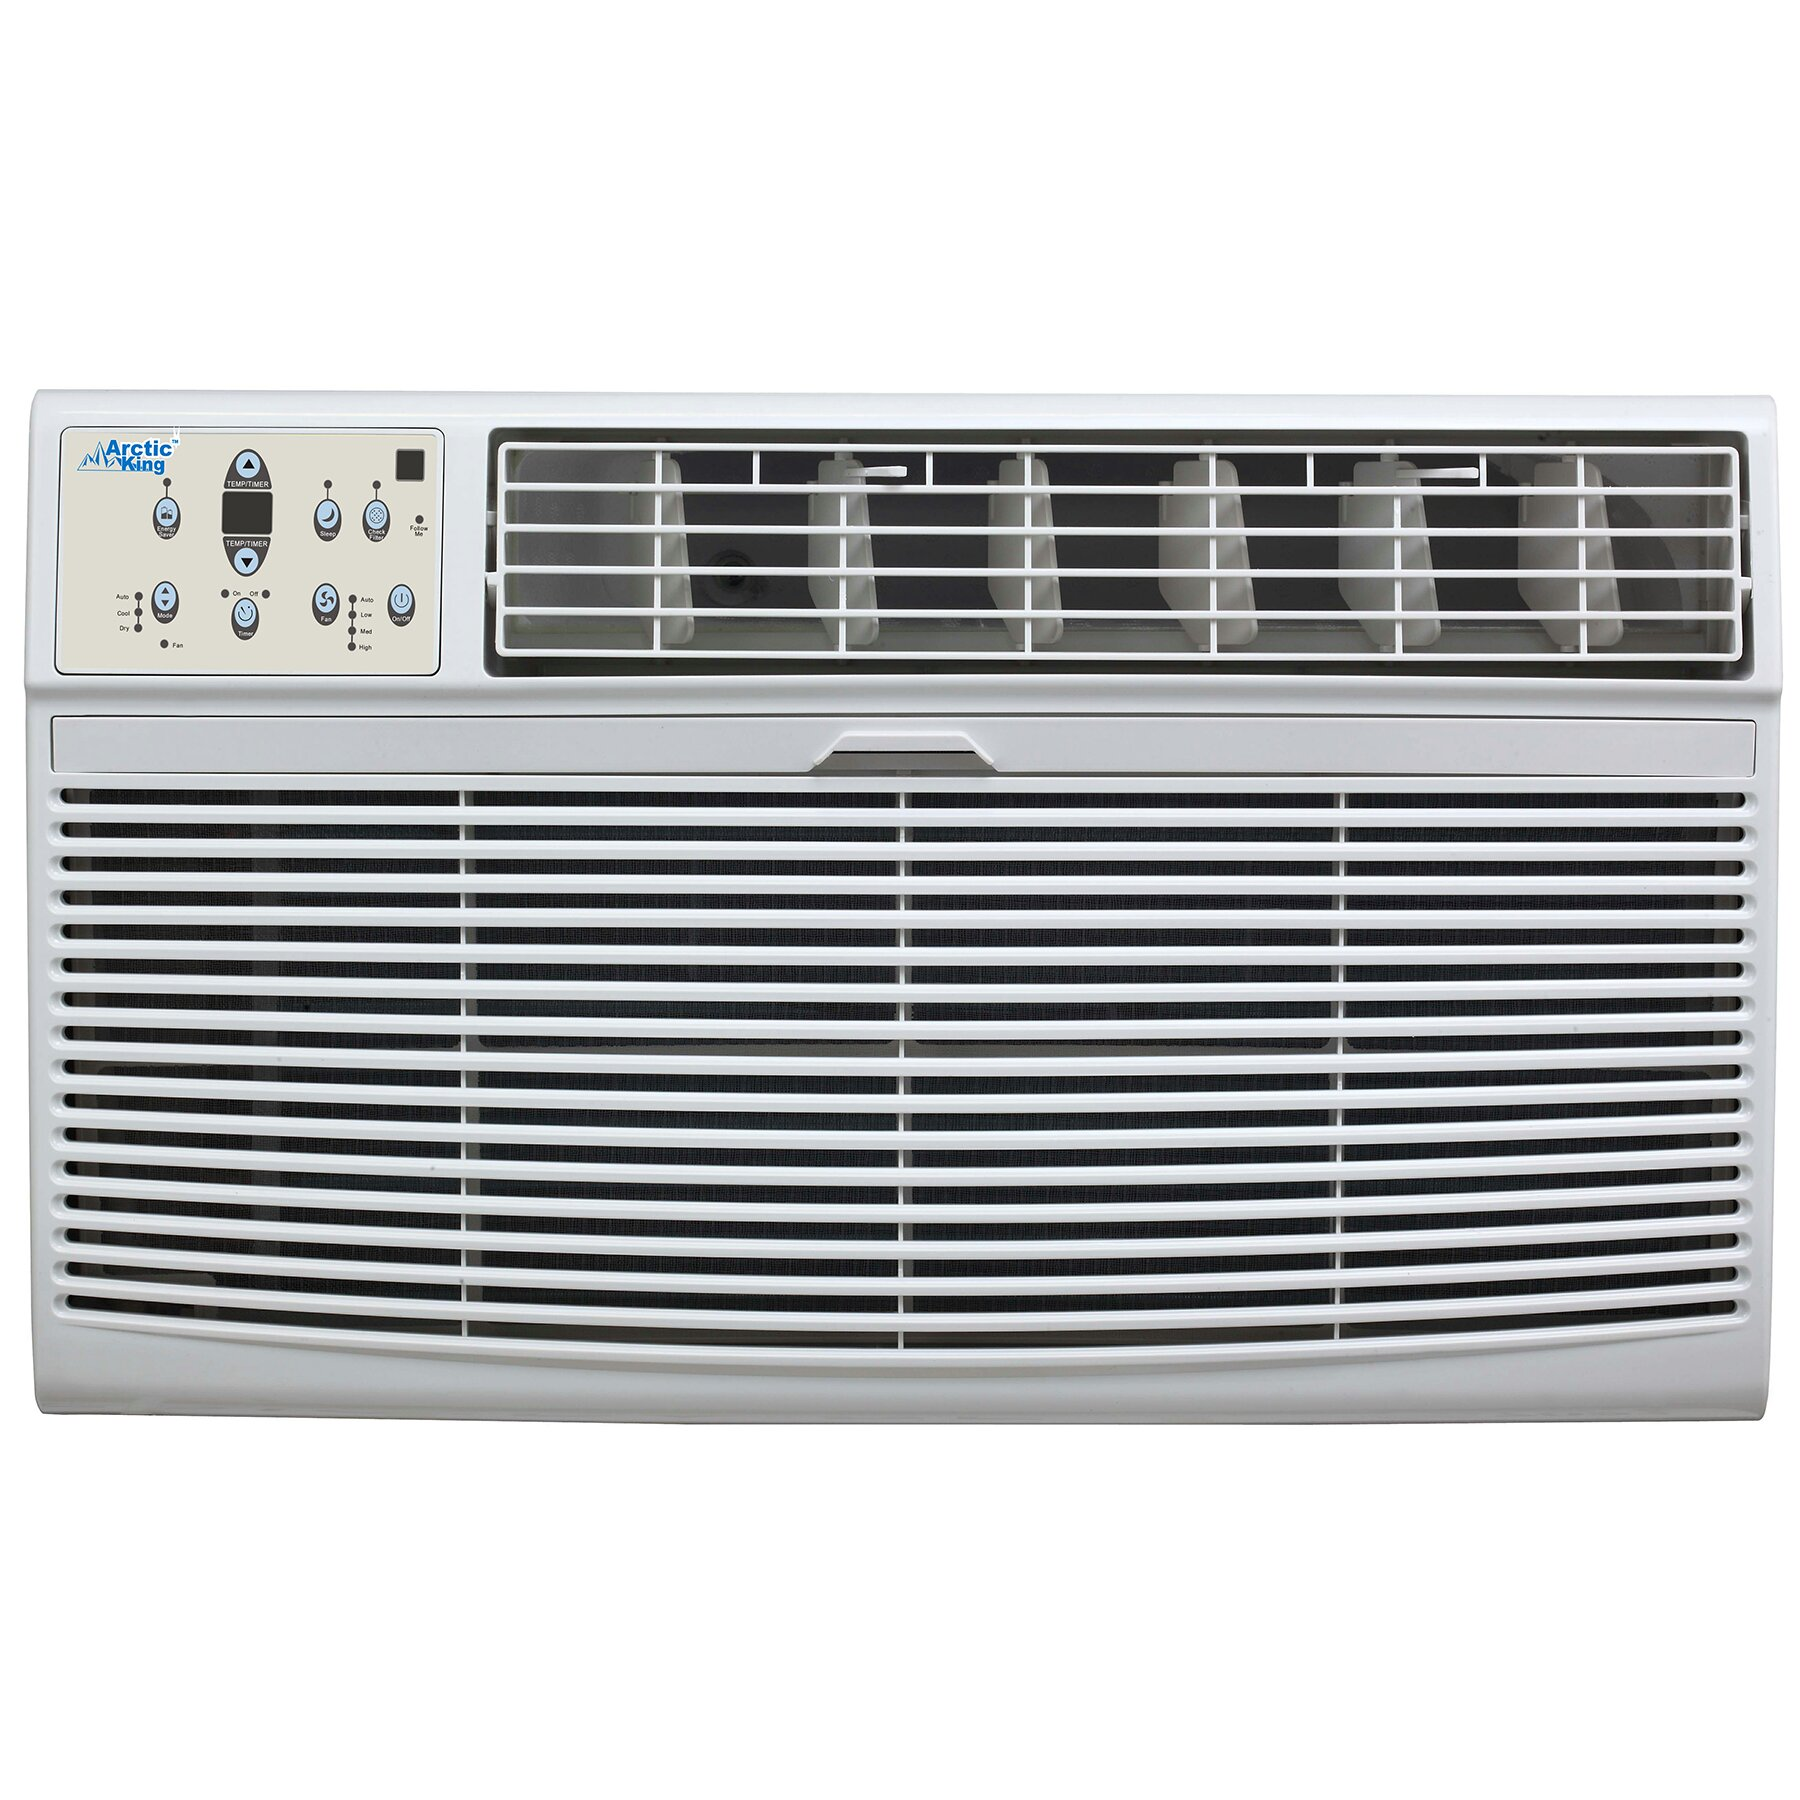 #5D676E Arctic King 12000 BTU Through The Wall Air Conditioner  Most Recent 14590 Wall Units Air Conditioner image with 1800x1800 px on helpvideos.info - Air Conditioners, Air Coolers and more